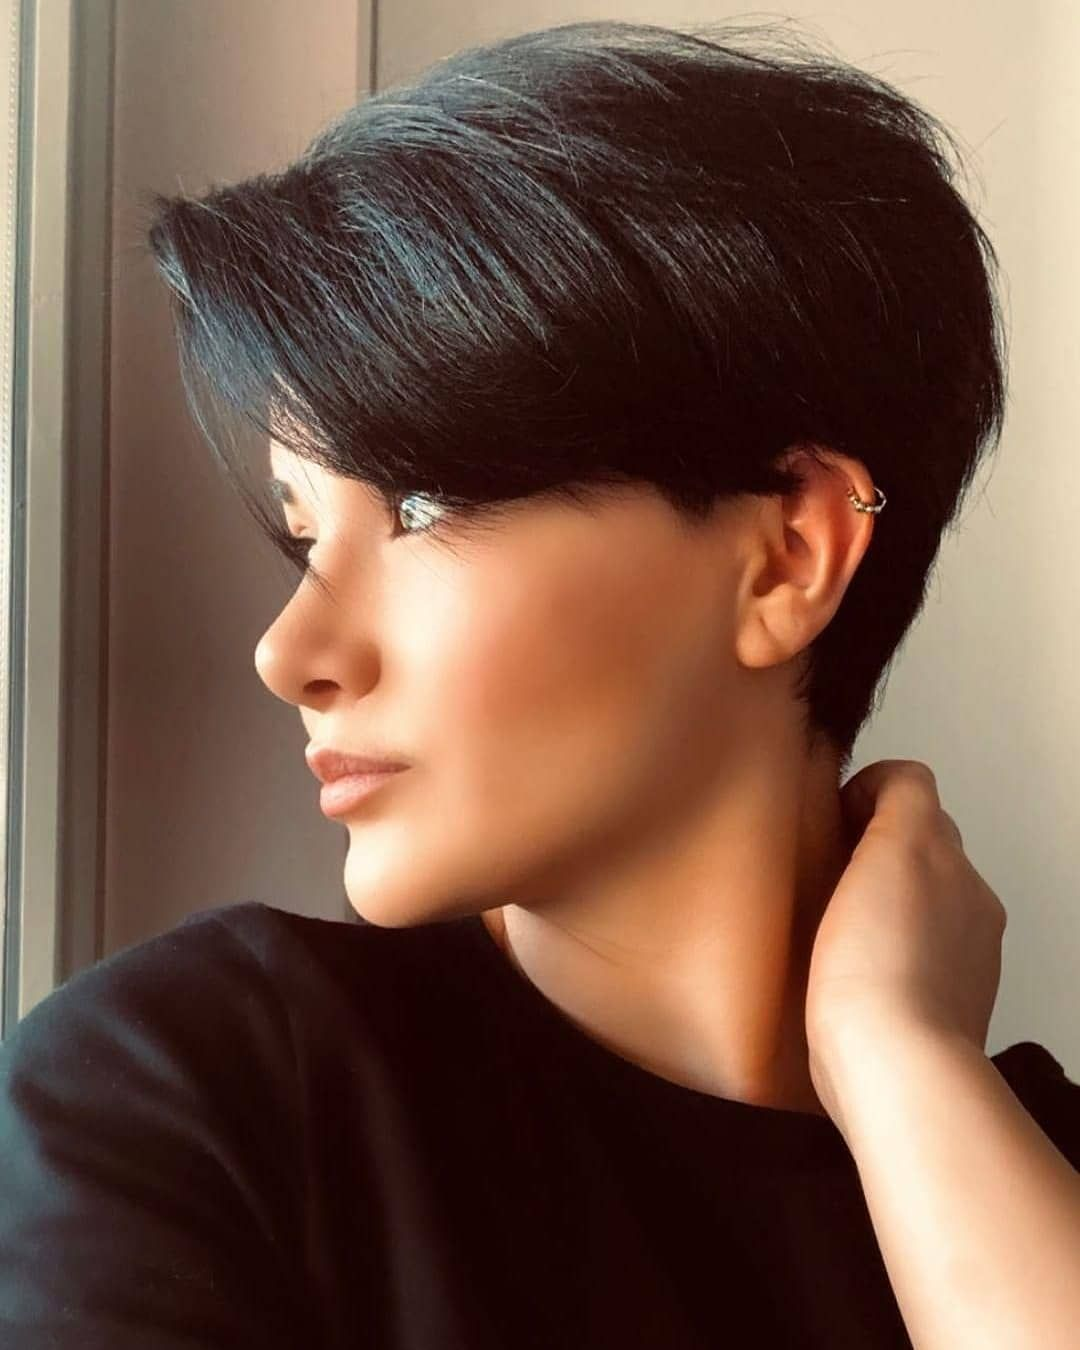 60 Of The Most Stunning Short Hairstyles On Instagram March 2019 Short Hair Styles Super Short Hair Hair Styles